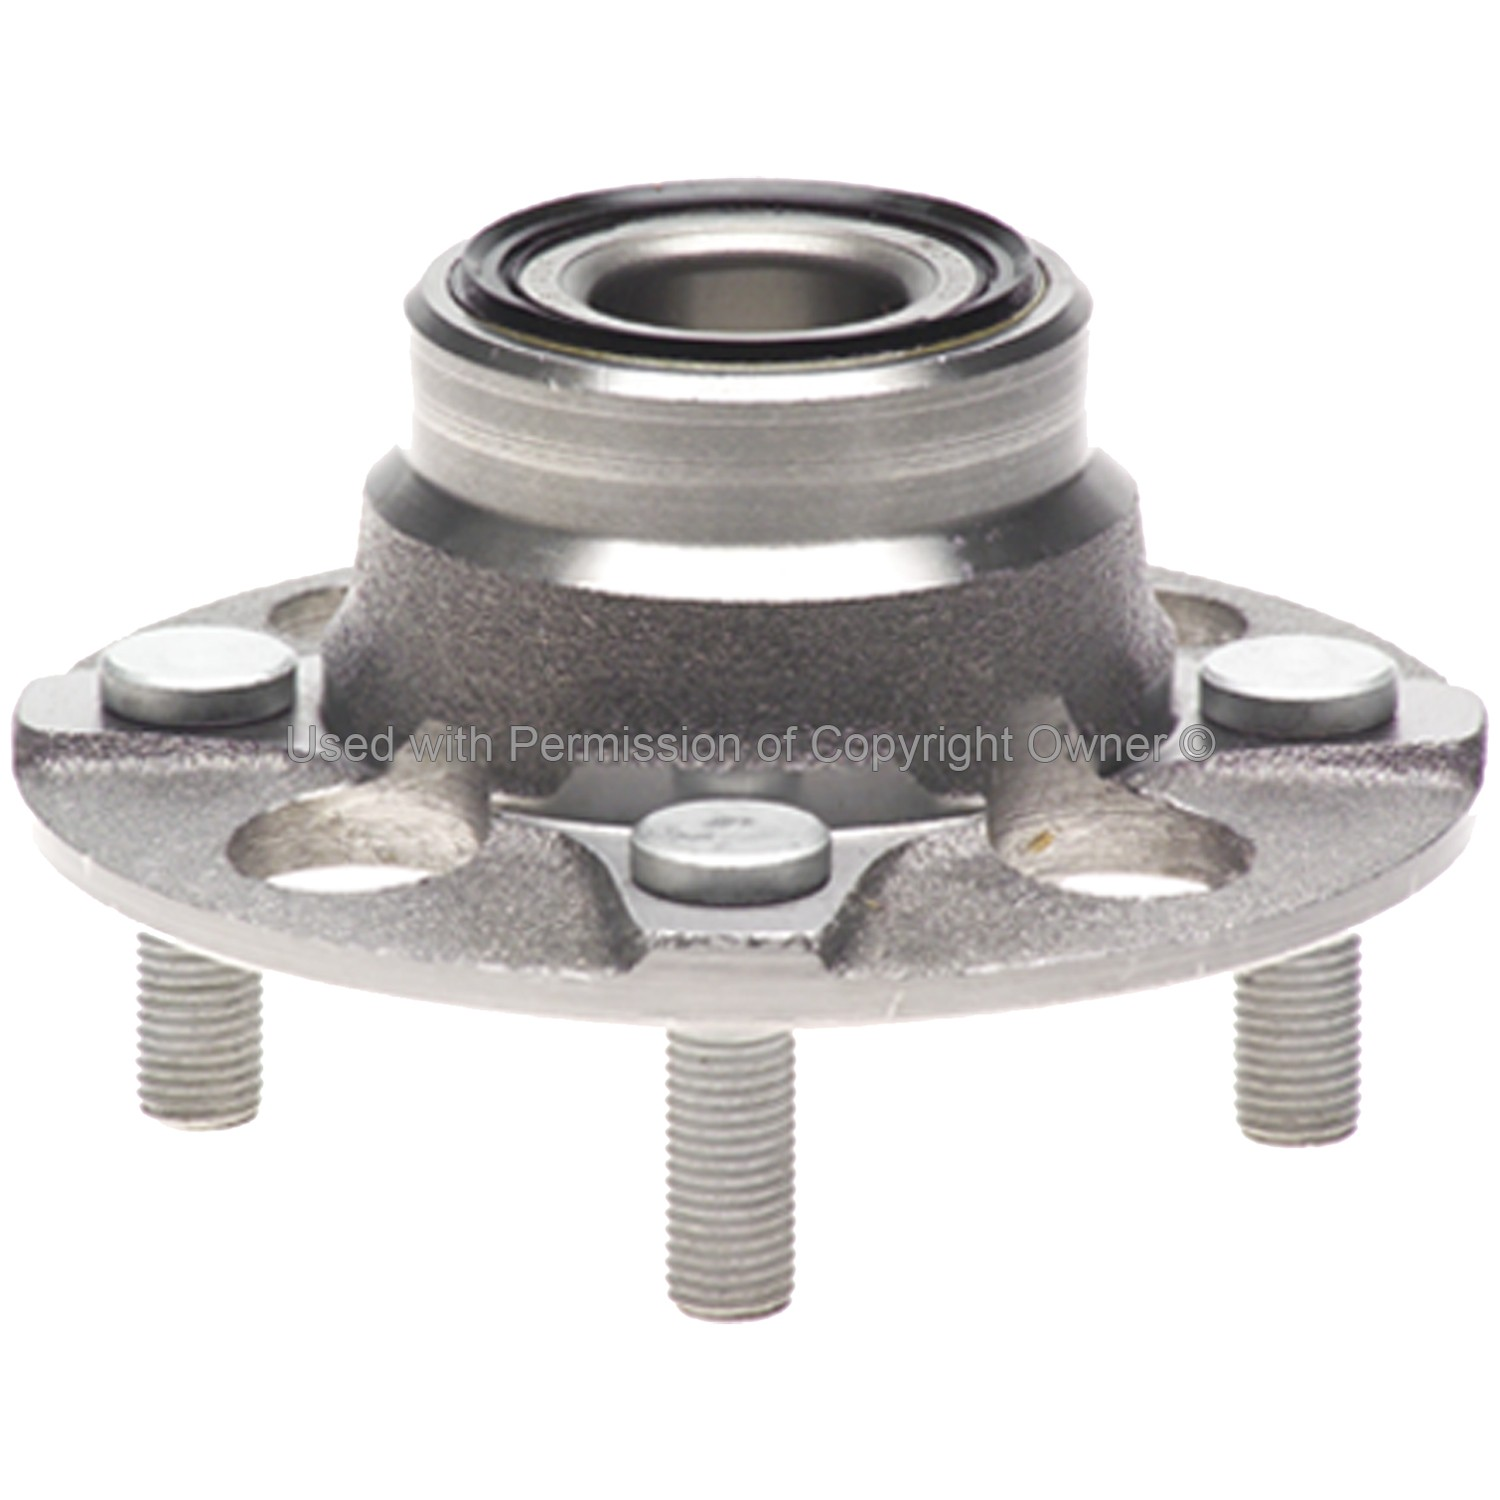 Note: Used For Both ABS and Non ABS Applications. Remove Tone Ring For Non ABS Applications If Clearance Is Needed 4-Wheel ABS 1992 For Acura Integra Rear Wheel Bearing and Hub Assembly x 2